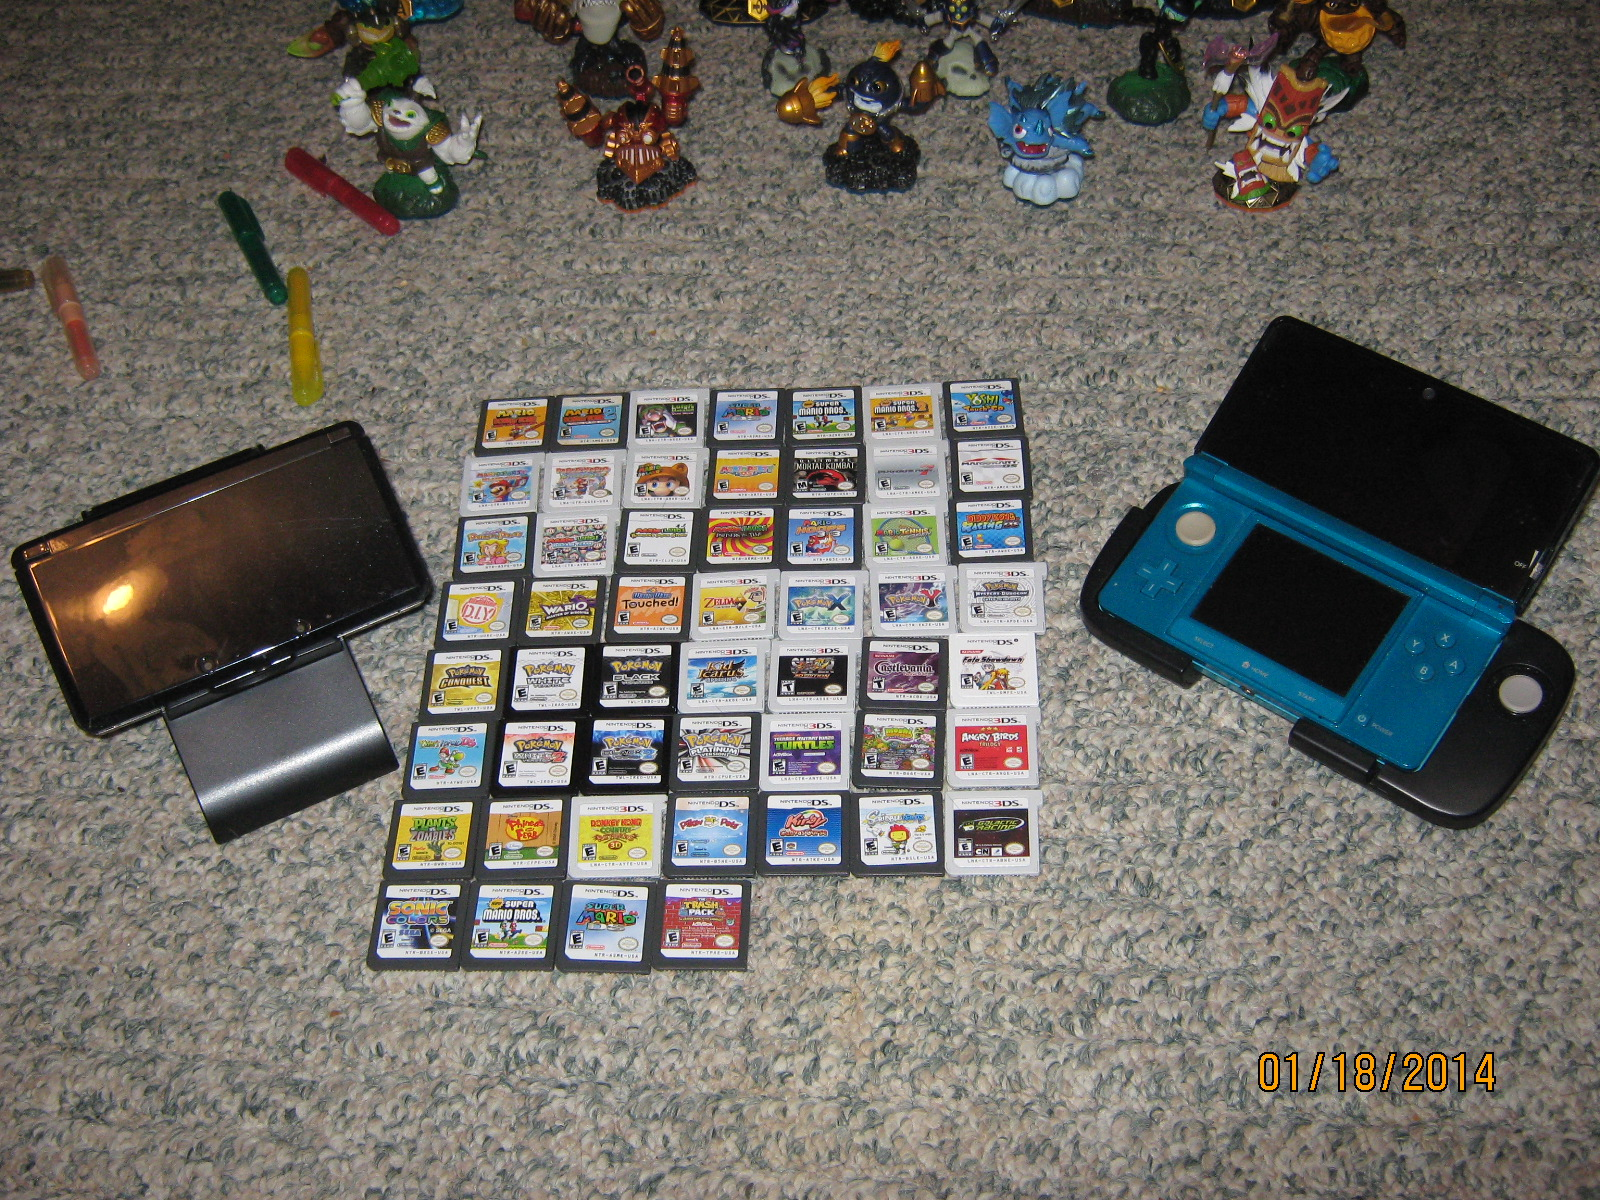 DS, DSi, 3DS Stuff from my son and I combined - Yes, there is 1 exclusive DSi game in there!.JPG